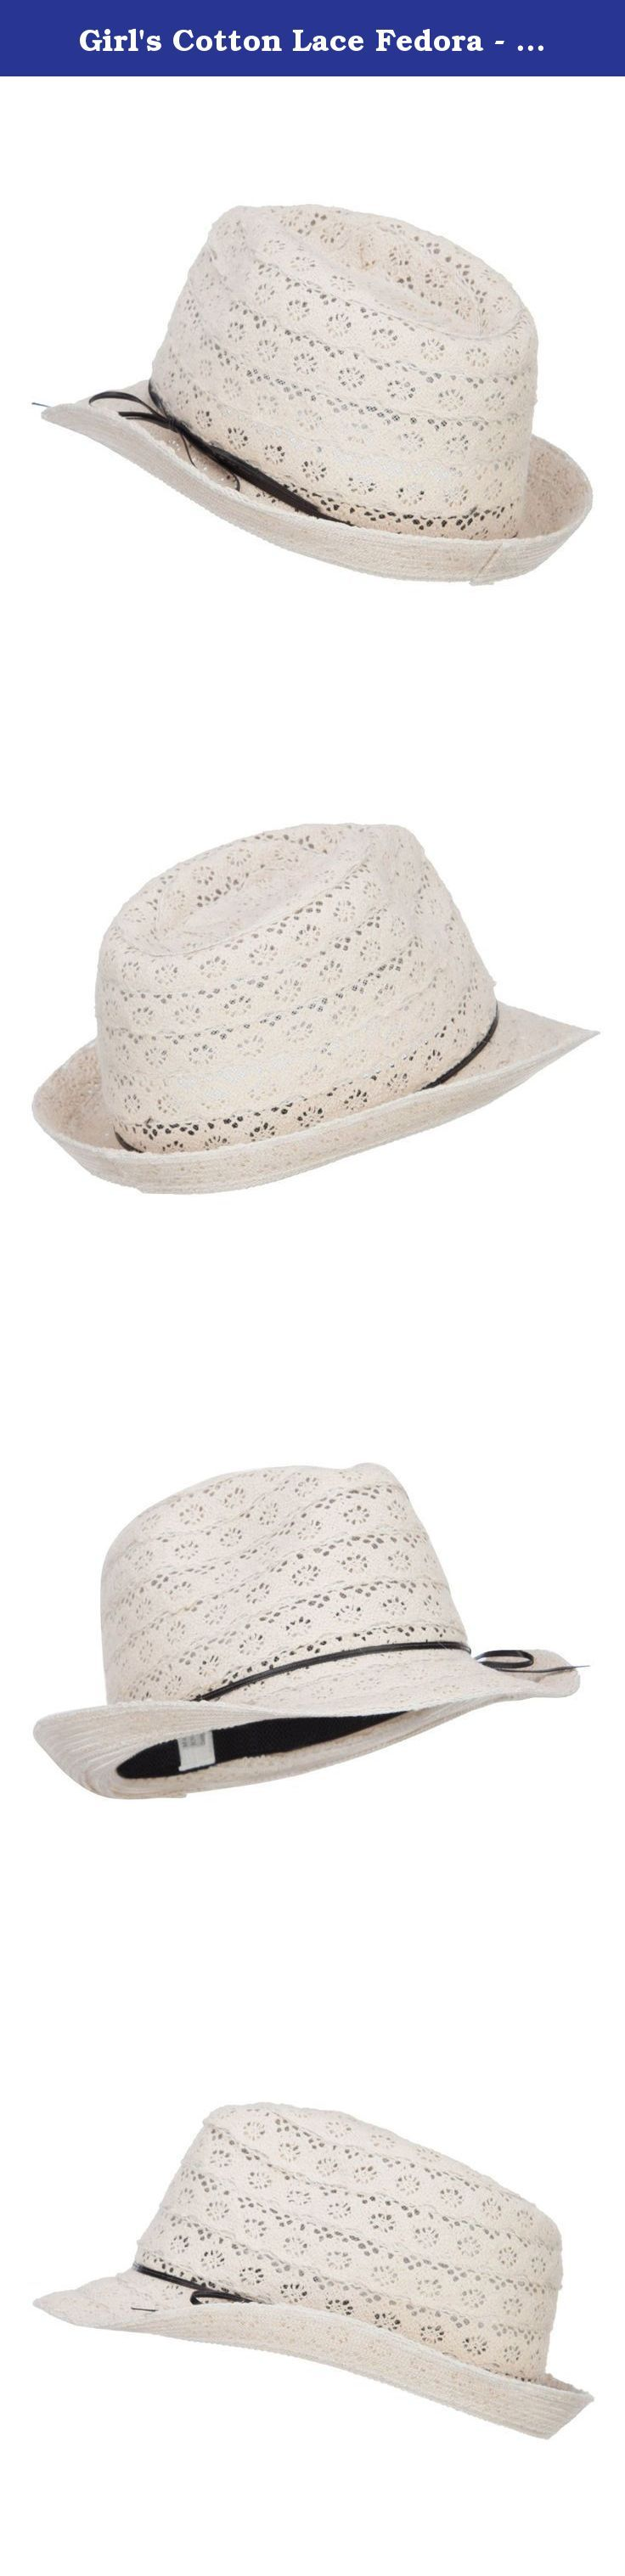 Girl's Cotton Lace Fedora - Cream OSFM. Lovely laced fedora hat for your little girls. Pinched top crown. A black ribbon tie is accented around the crown. Back brim is turned upward. Easy to pack. Our girl's laced fedora is great for vacation, beach, picnic for your children. Spring and Summer. 9.5(W) X 10.5(L) X 5(H)inches. Flexible, cool and lightweight material. Available in different colors and styles.